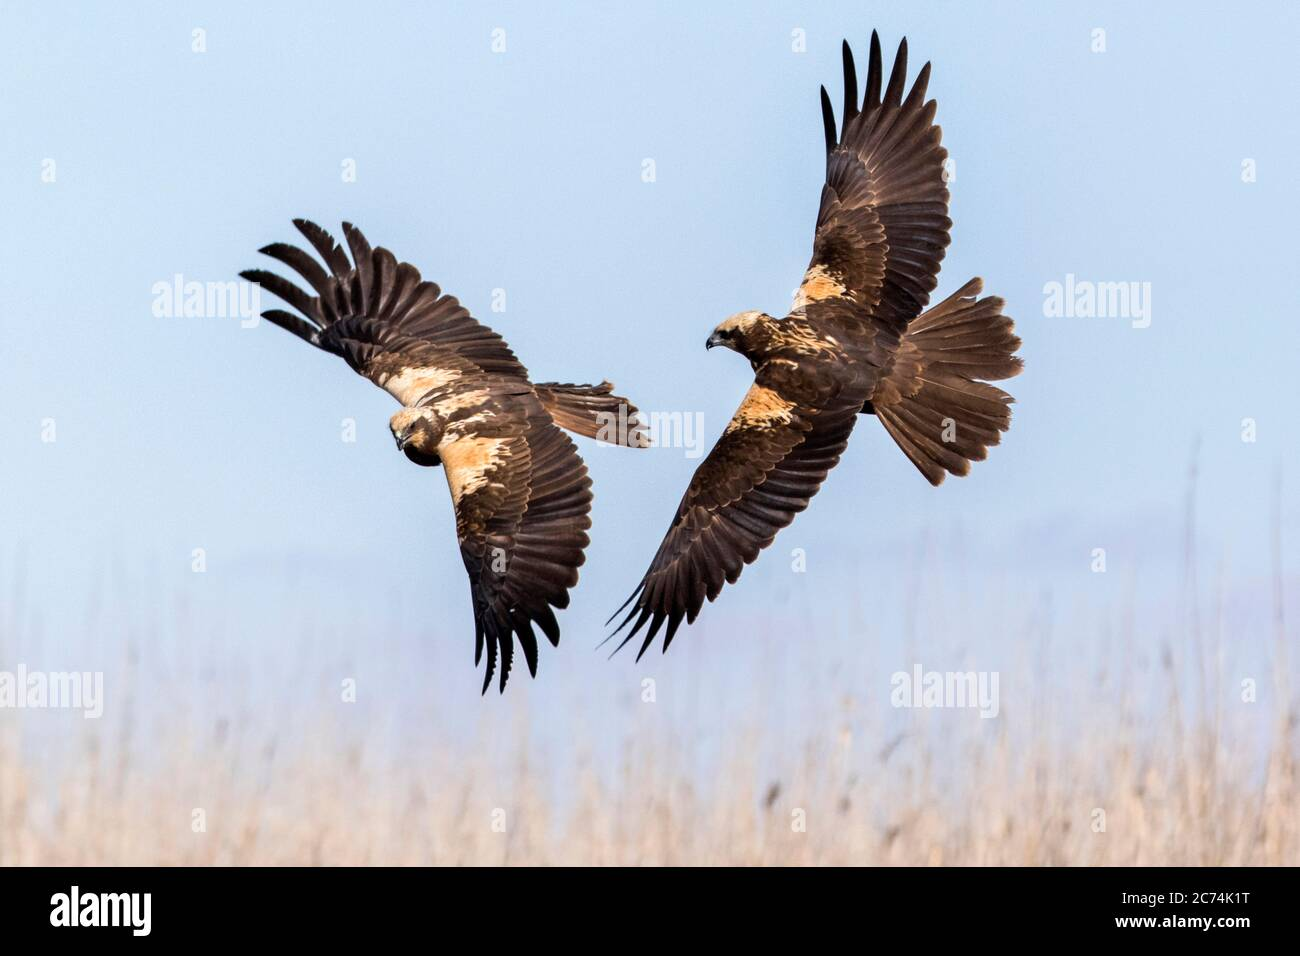 Western Marsh Harrier (Circus aeruginosus), two Western Marsh Harriers fighting in midair, Spain Stock Photo